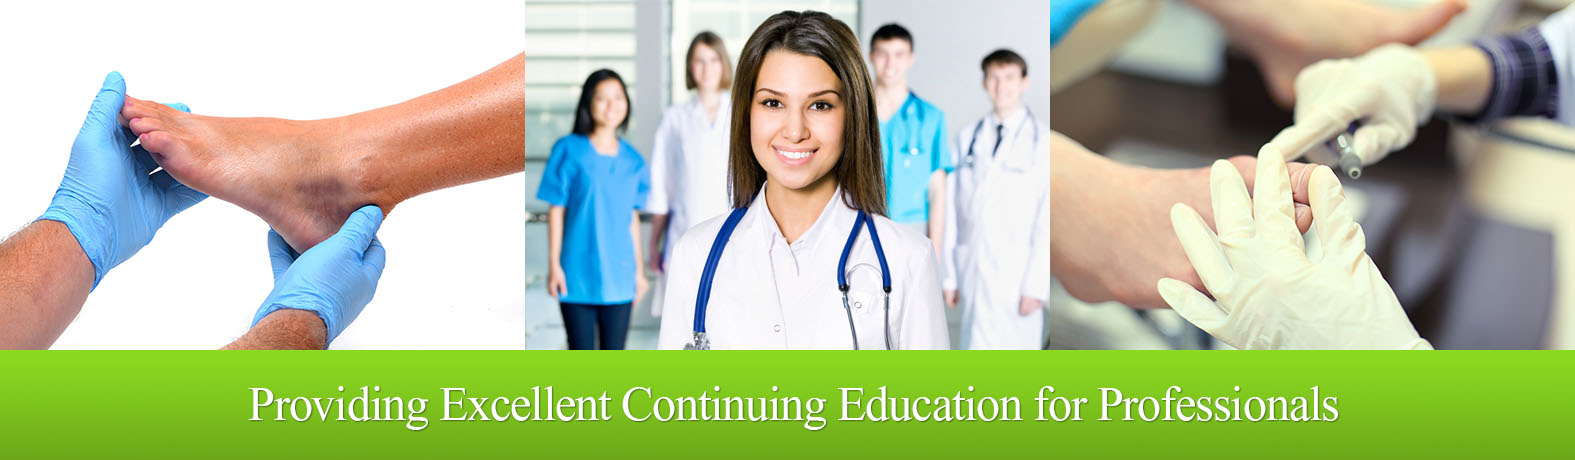 Providing continuing education for professionals